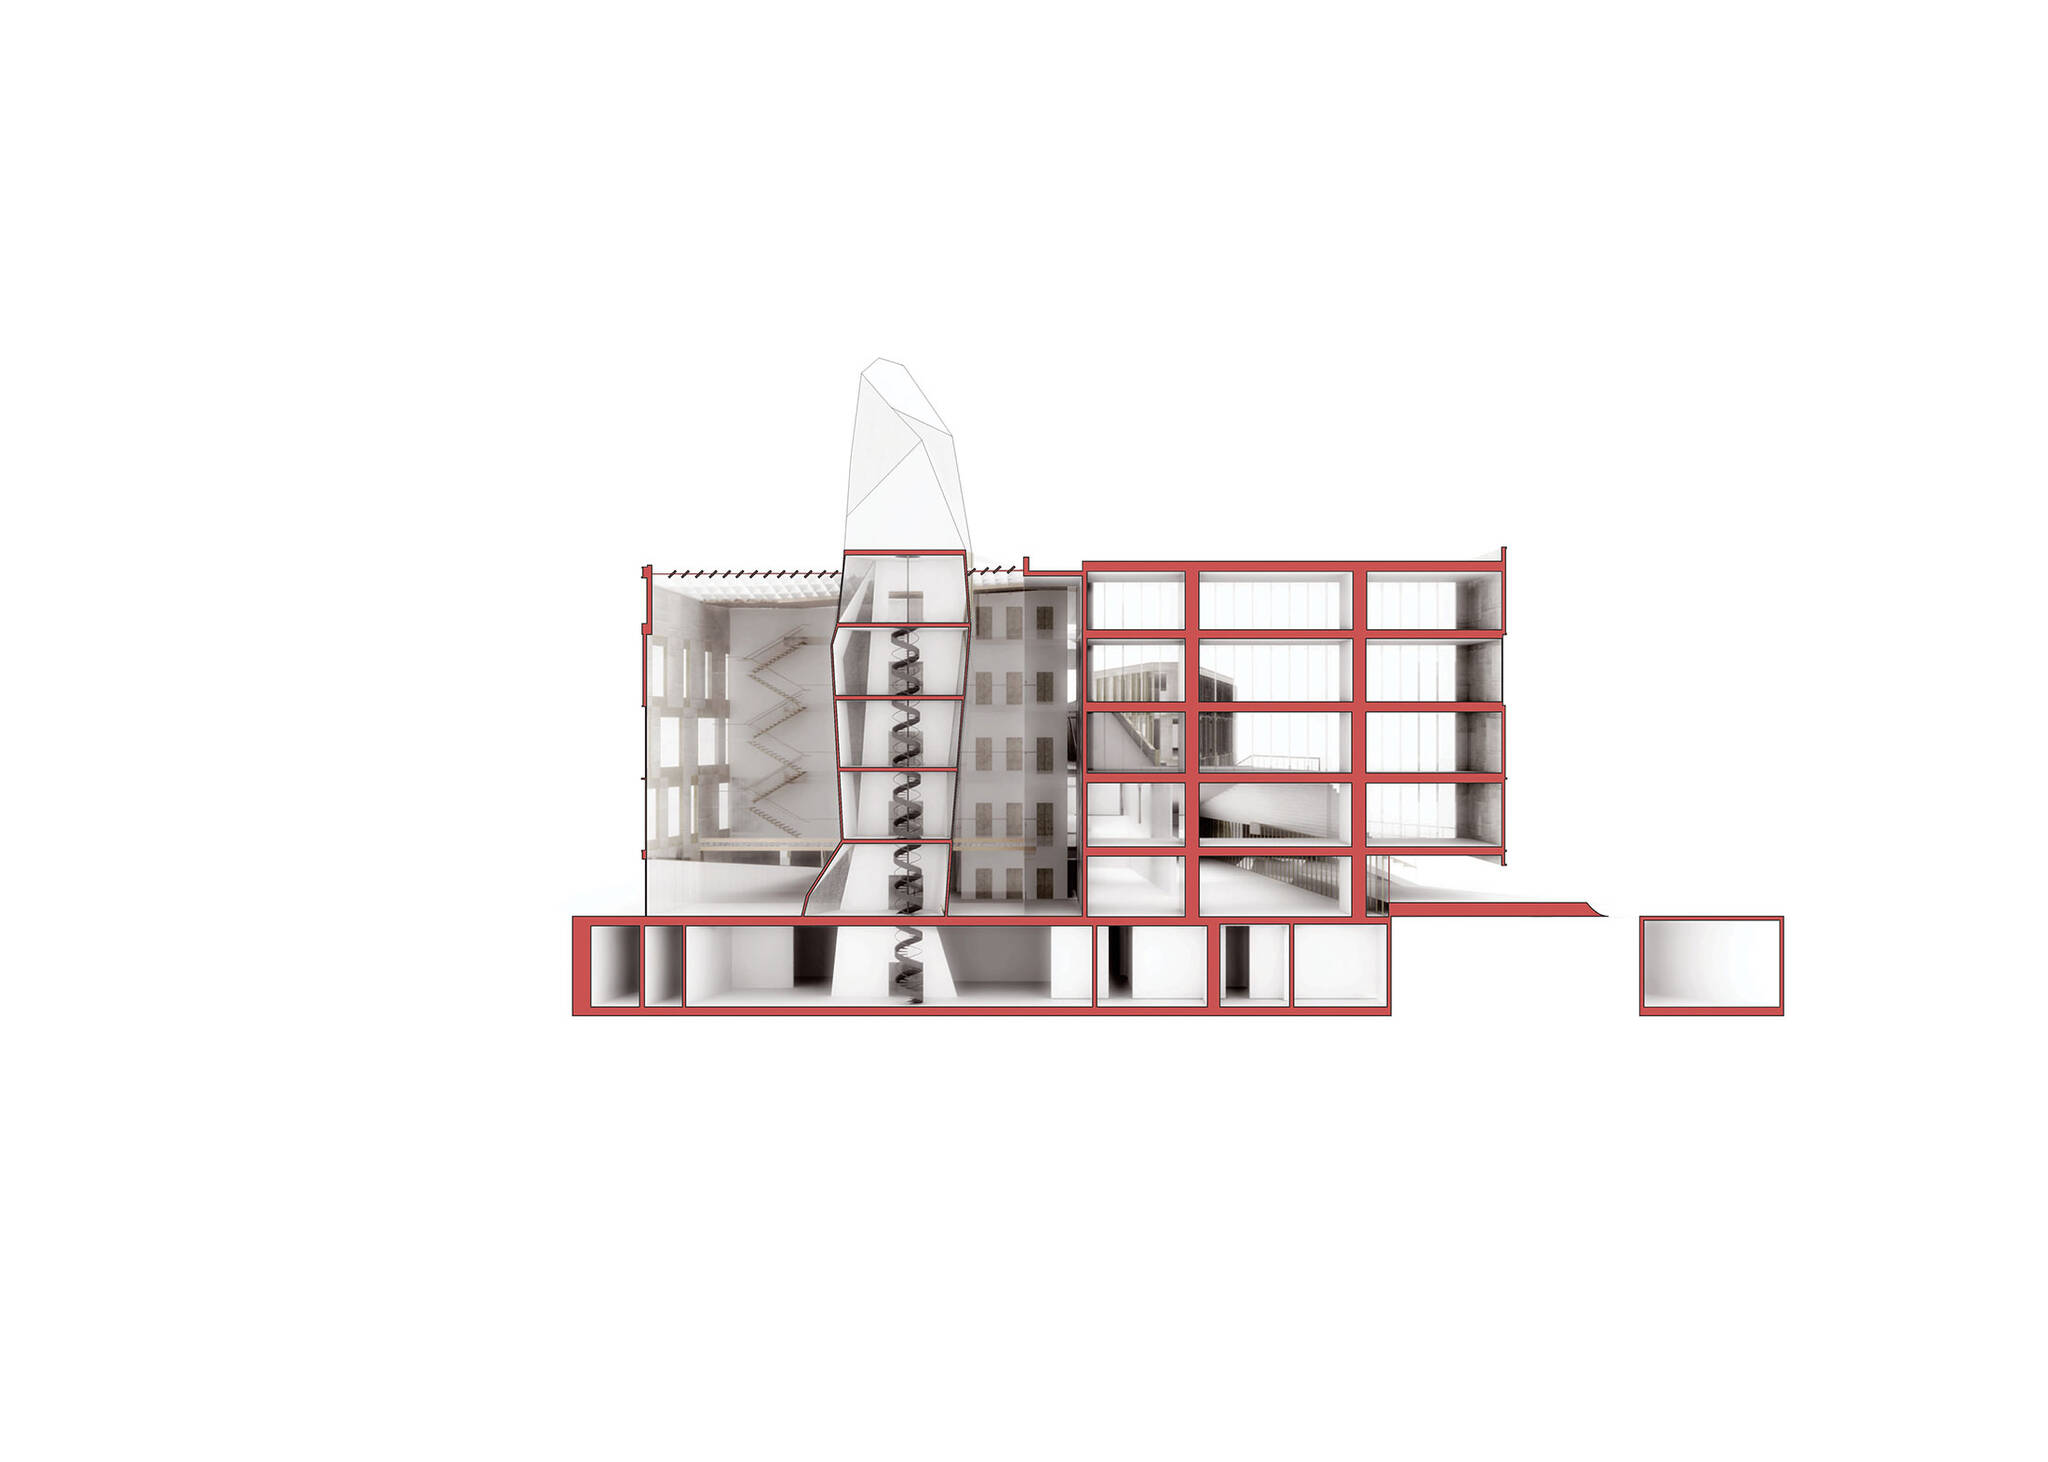 Short section of the Museum of Etnography project located in Budapest, Hungary designed by the architecture studio Danny Forster & Architecture